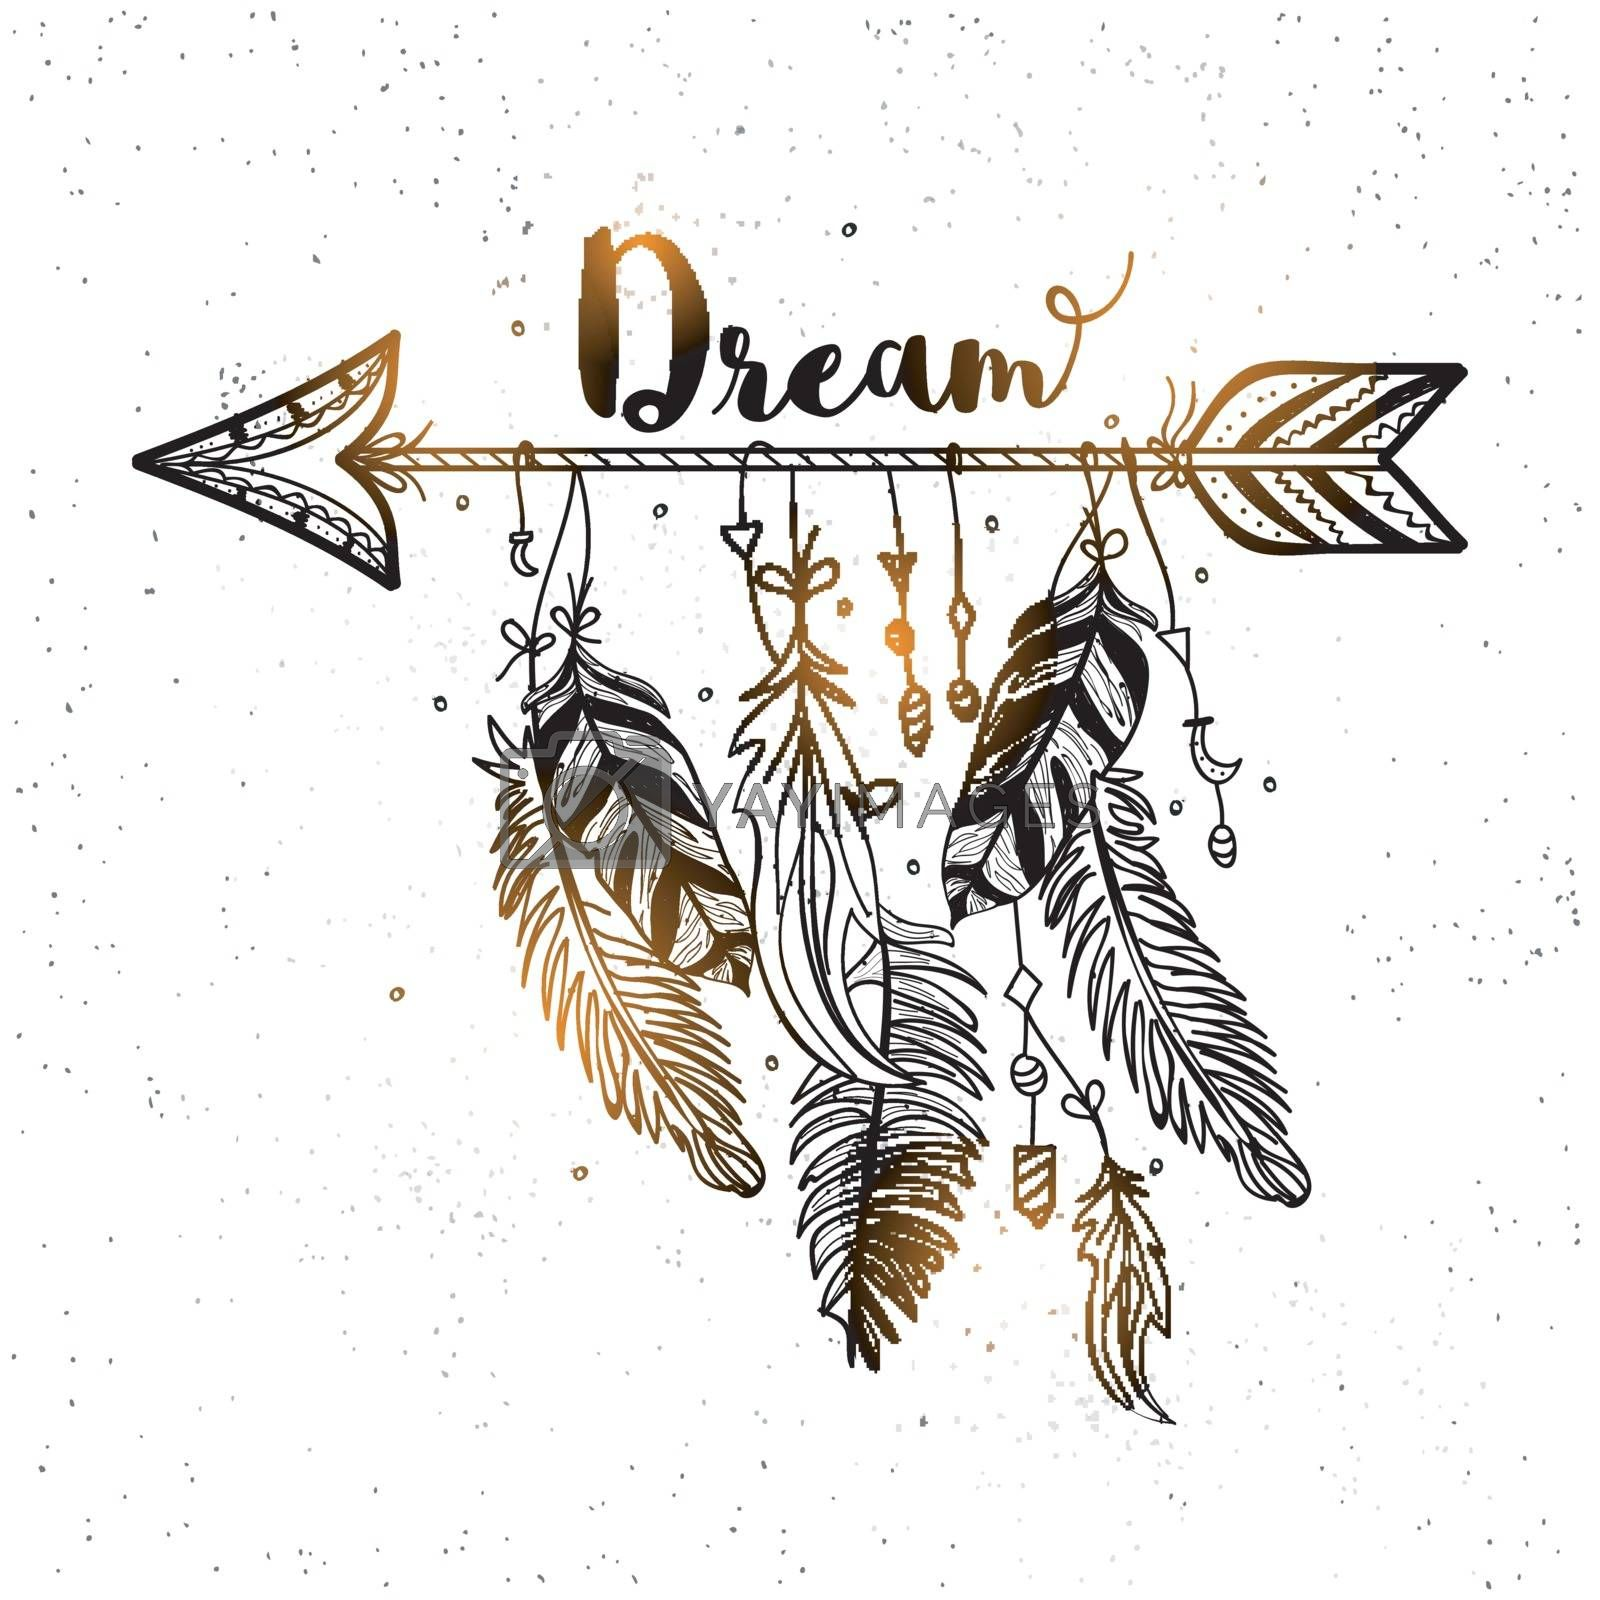 Boho style, Hand drawn dreamcatcher with ethnic arrow and beautiful feathers.